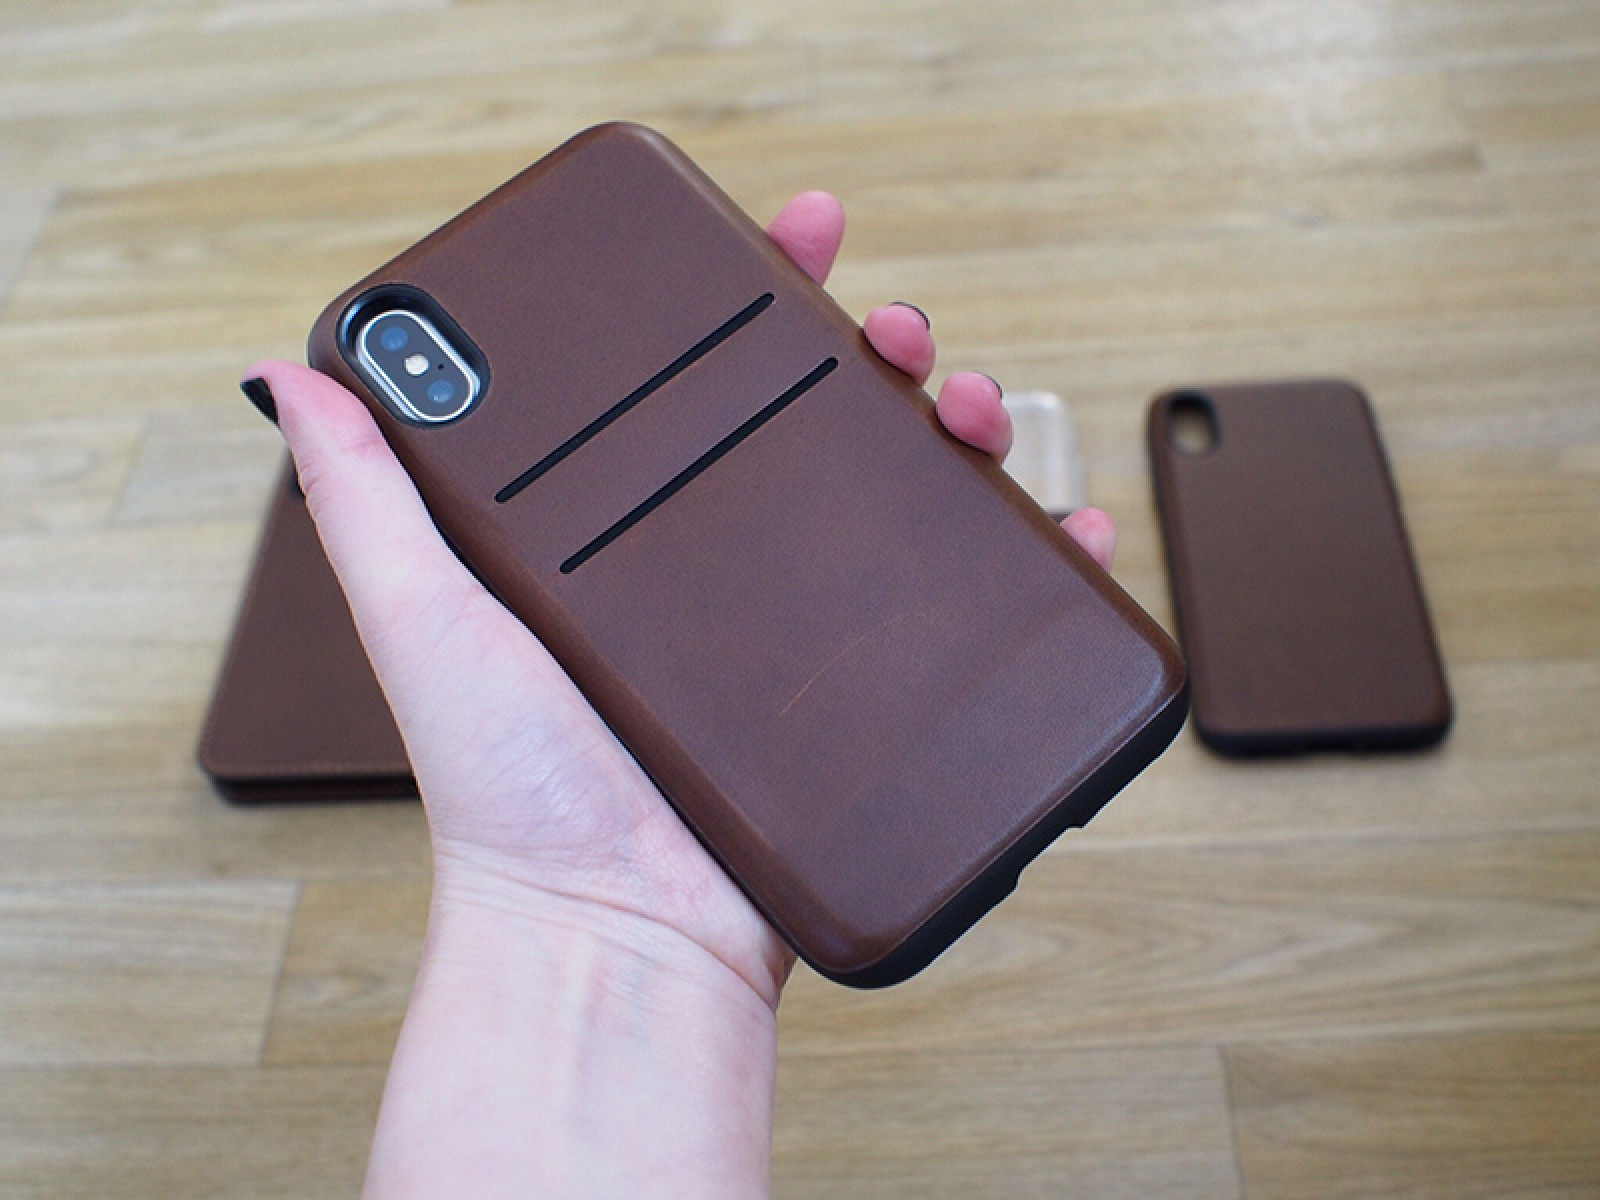 wholesale dealer 2276f 57f3f iPhone X Case Review Roundup: Apple, Twelve South, Nomad, Speck and ...